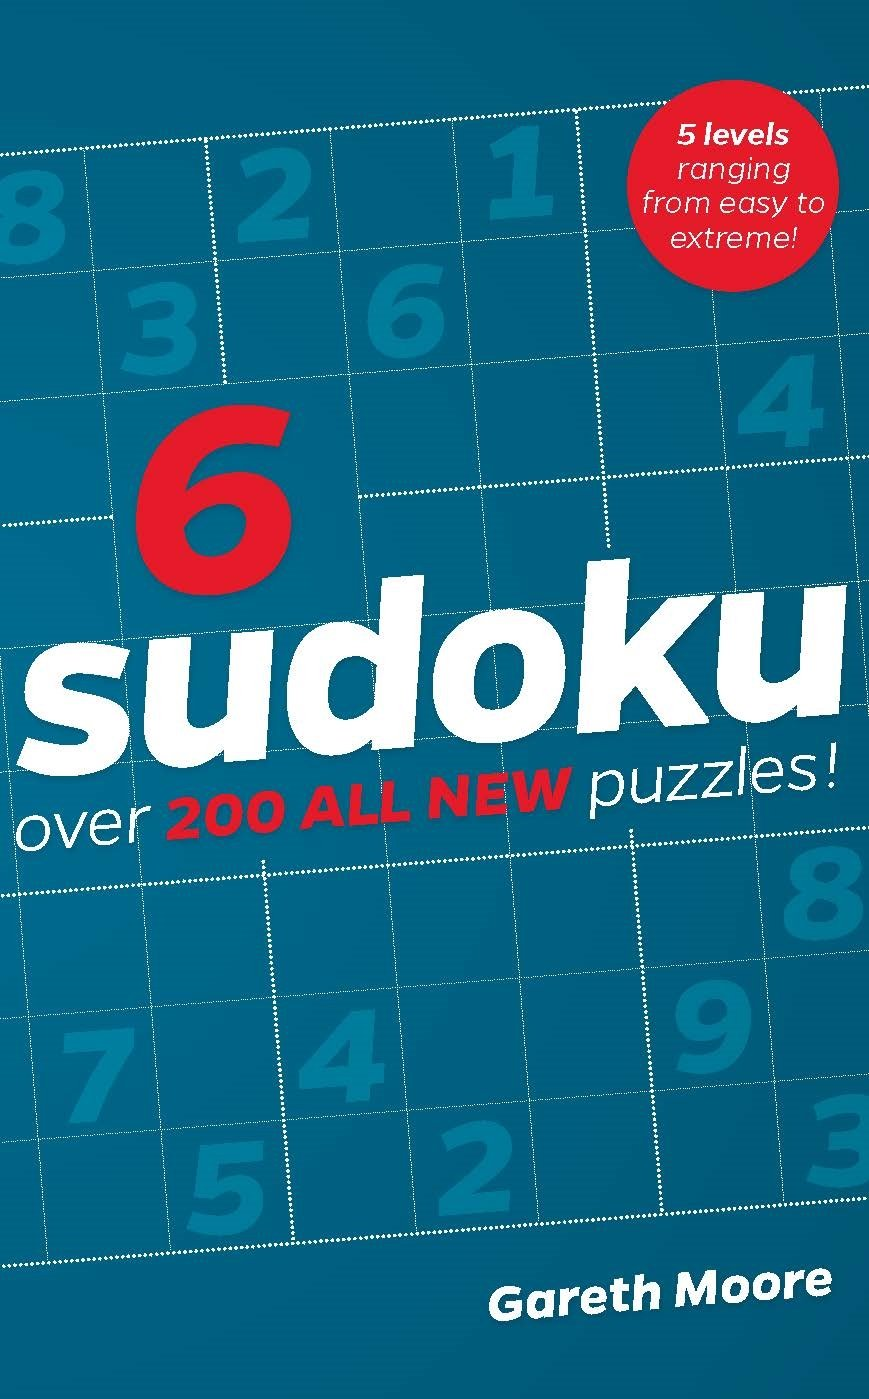 SUDOKU 6 - Over 200 All New Puzzles! - 5 levels ranging from easy to extreme!